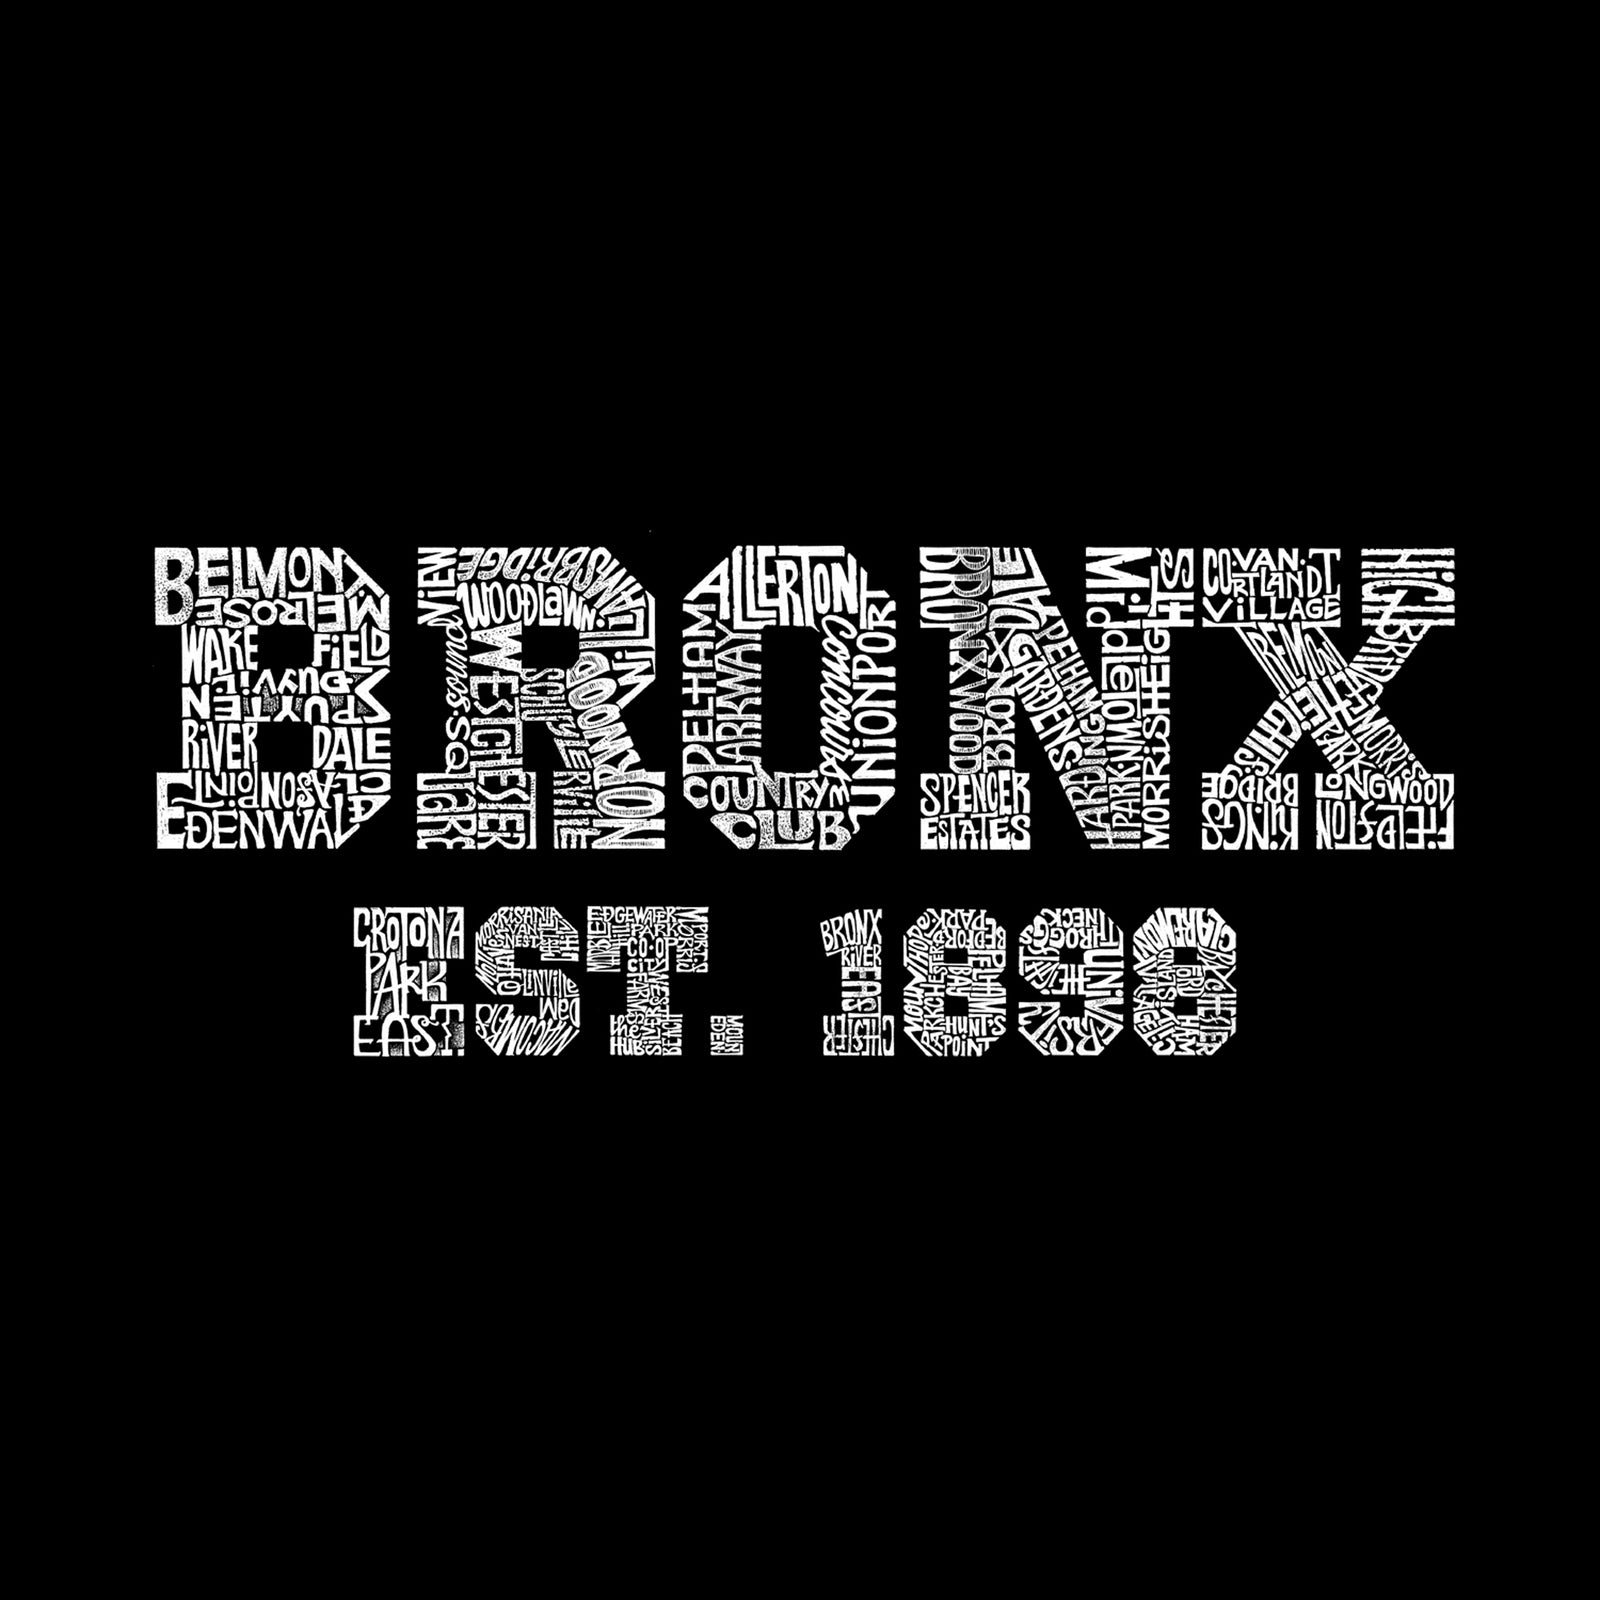 Men's Sleeveless T-shirt - POPULAR NEIGHBORHOODS IN BRONX, NY